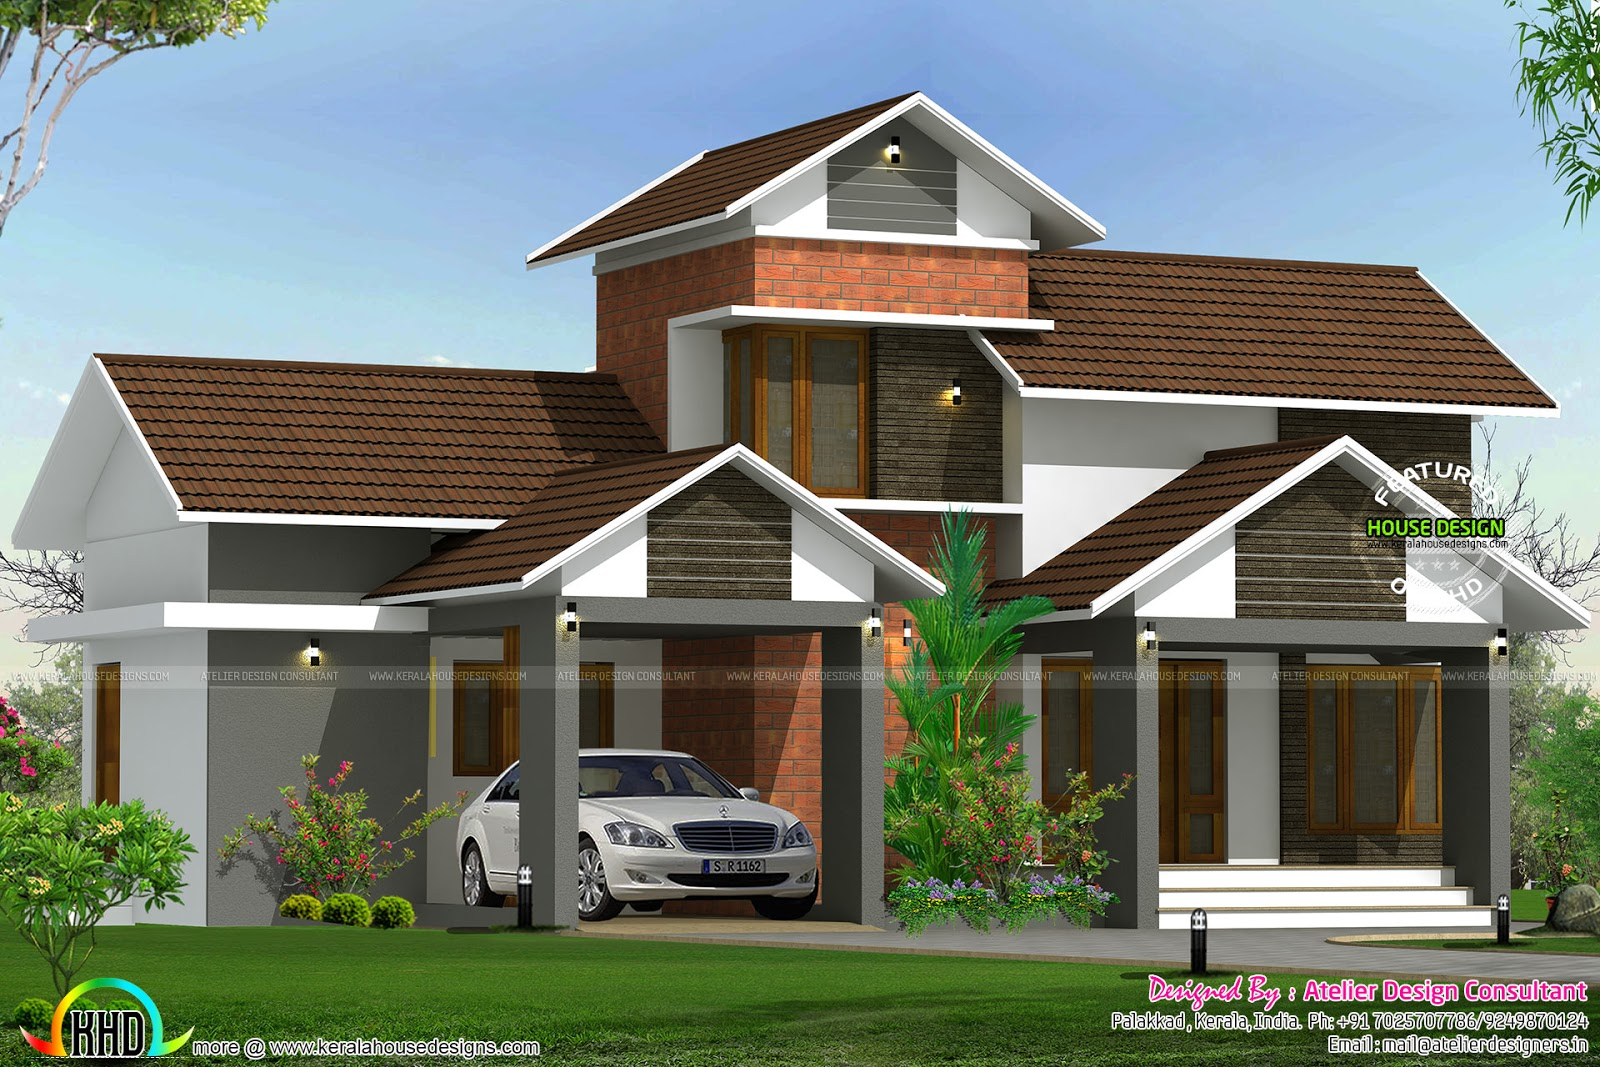 20 Lakh Home In Surat 20 Lakhs House Plan Kerala Home Design And Floor Plans